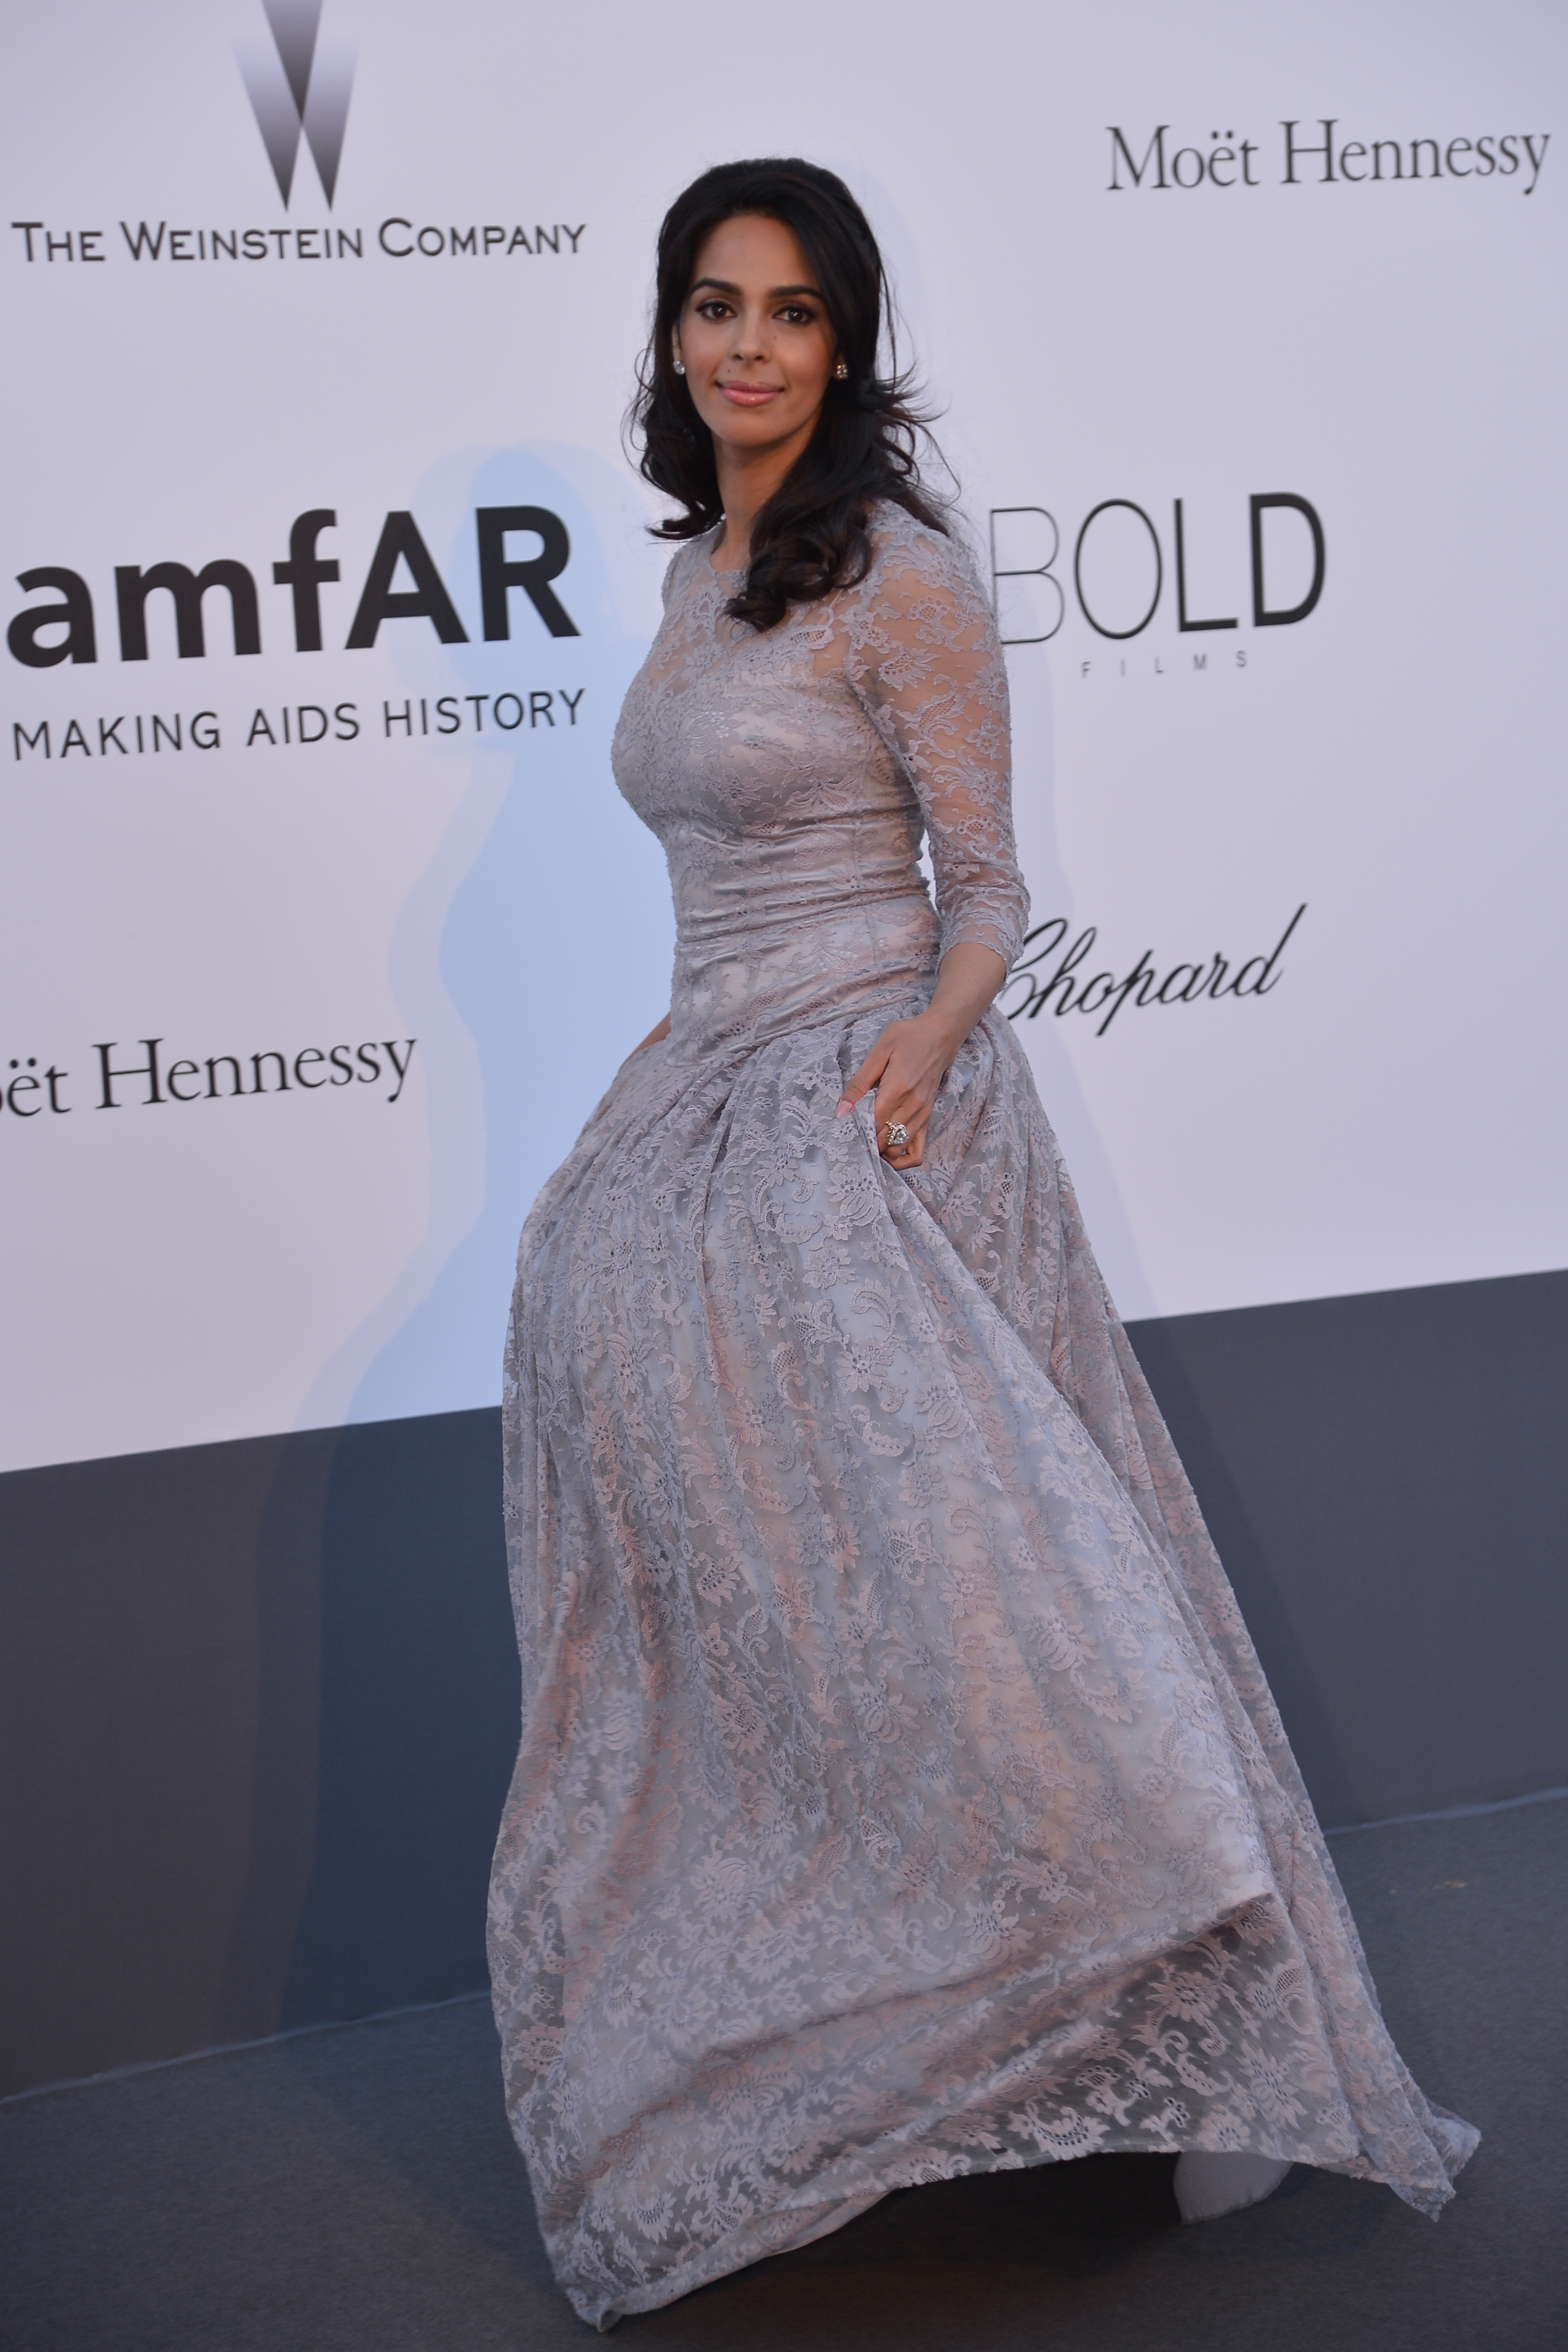 For the amfAR AIDS event at Cannes this year, Mallika chose a subtle Dolce & Gabbana gown.